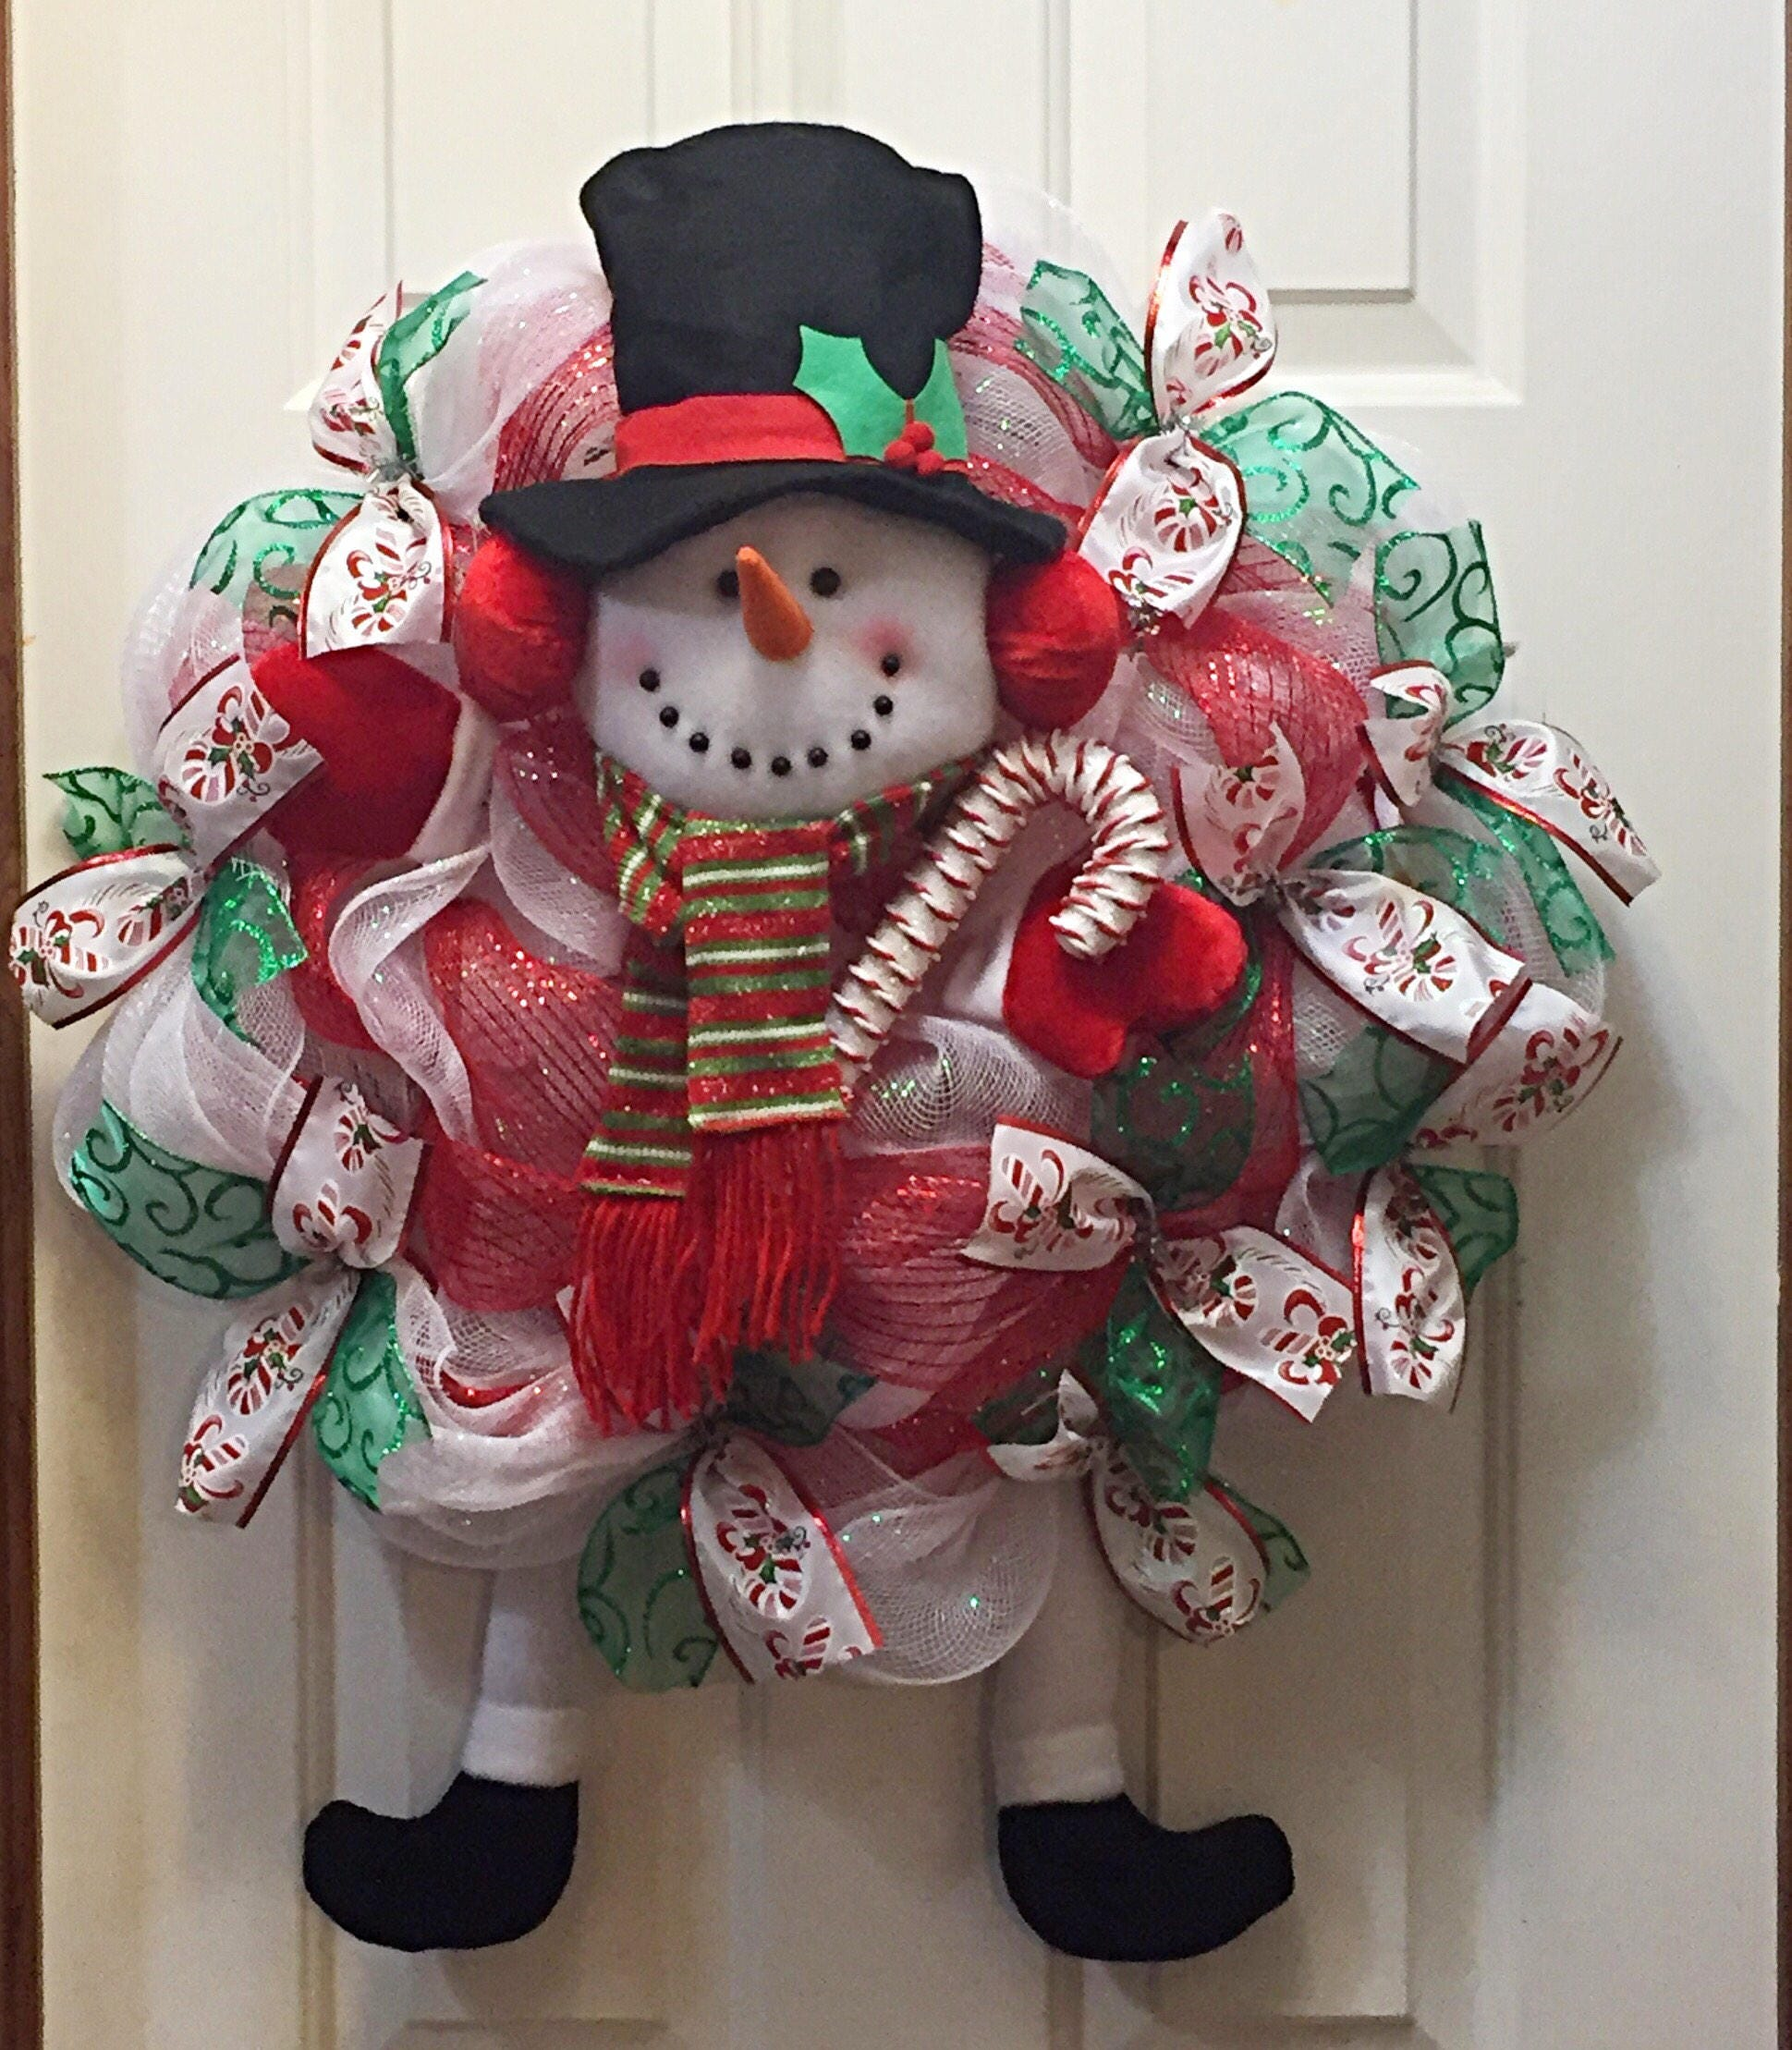 pathways reg decorations hei snowman p christmas wid a prod trim ct qlt home cute decor eva